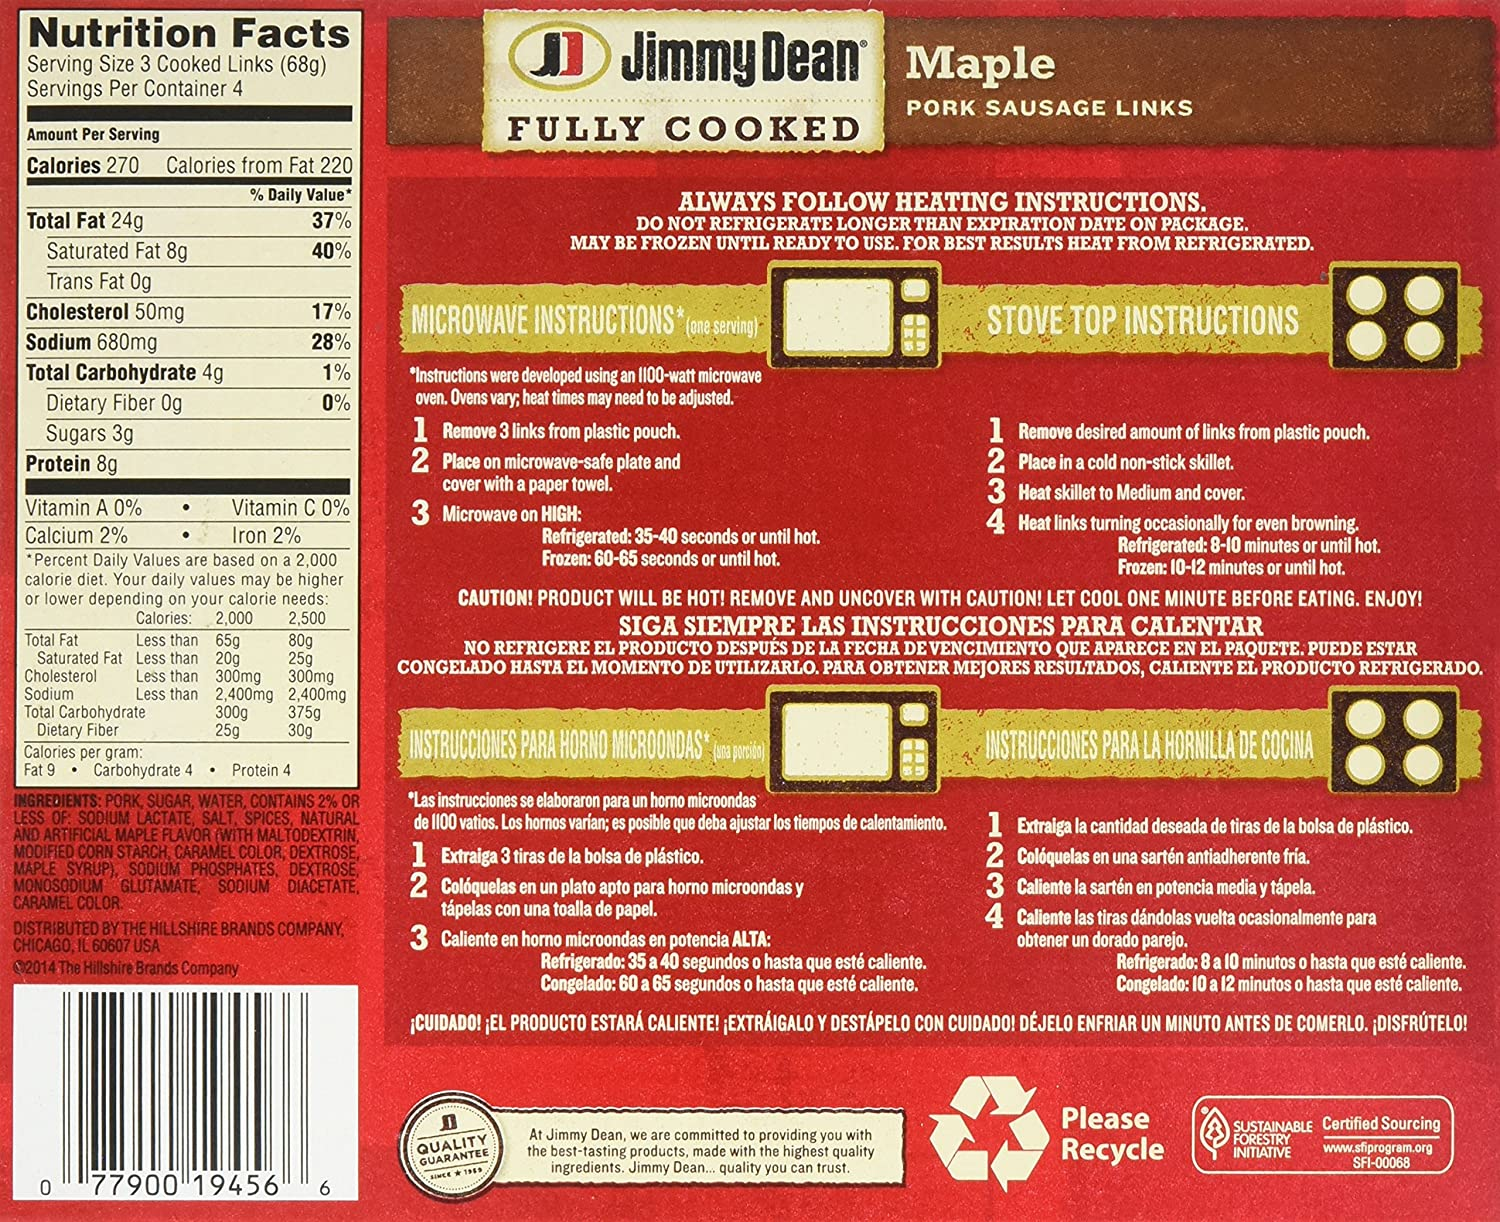 Jimmy Dean Fully Cooked Maple Pork Sausage Links, 12 Count: Messy Marv, Mistah Fab, Snoop Dogg, The Game, E-40, Keak Da Sneak, Mitchy Slick, 2Pac, Ice Cube, ...